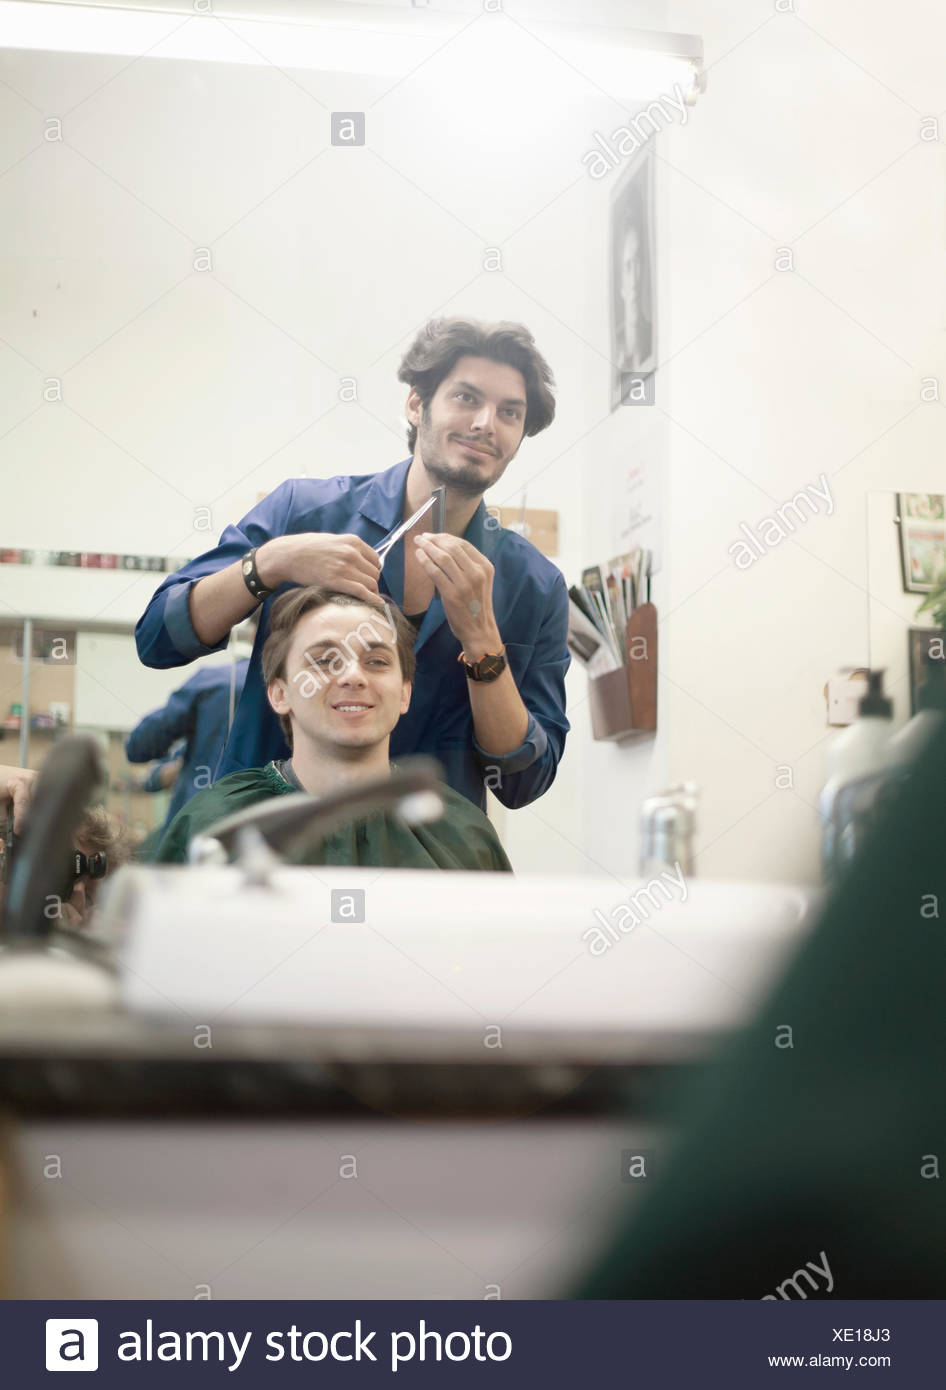 Barber styling customer's hair - Stock Image